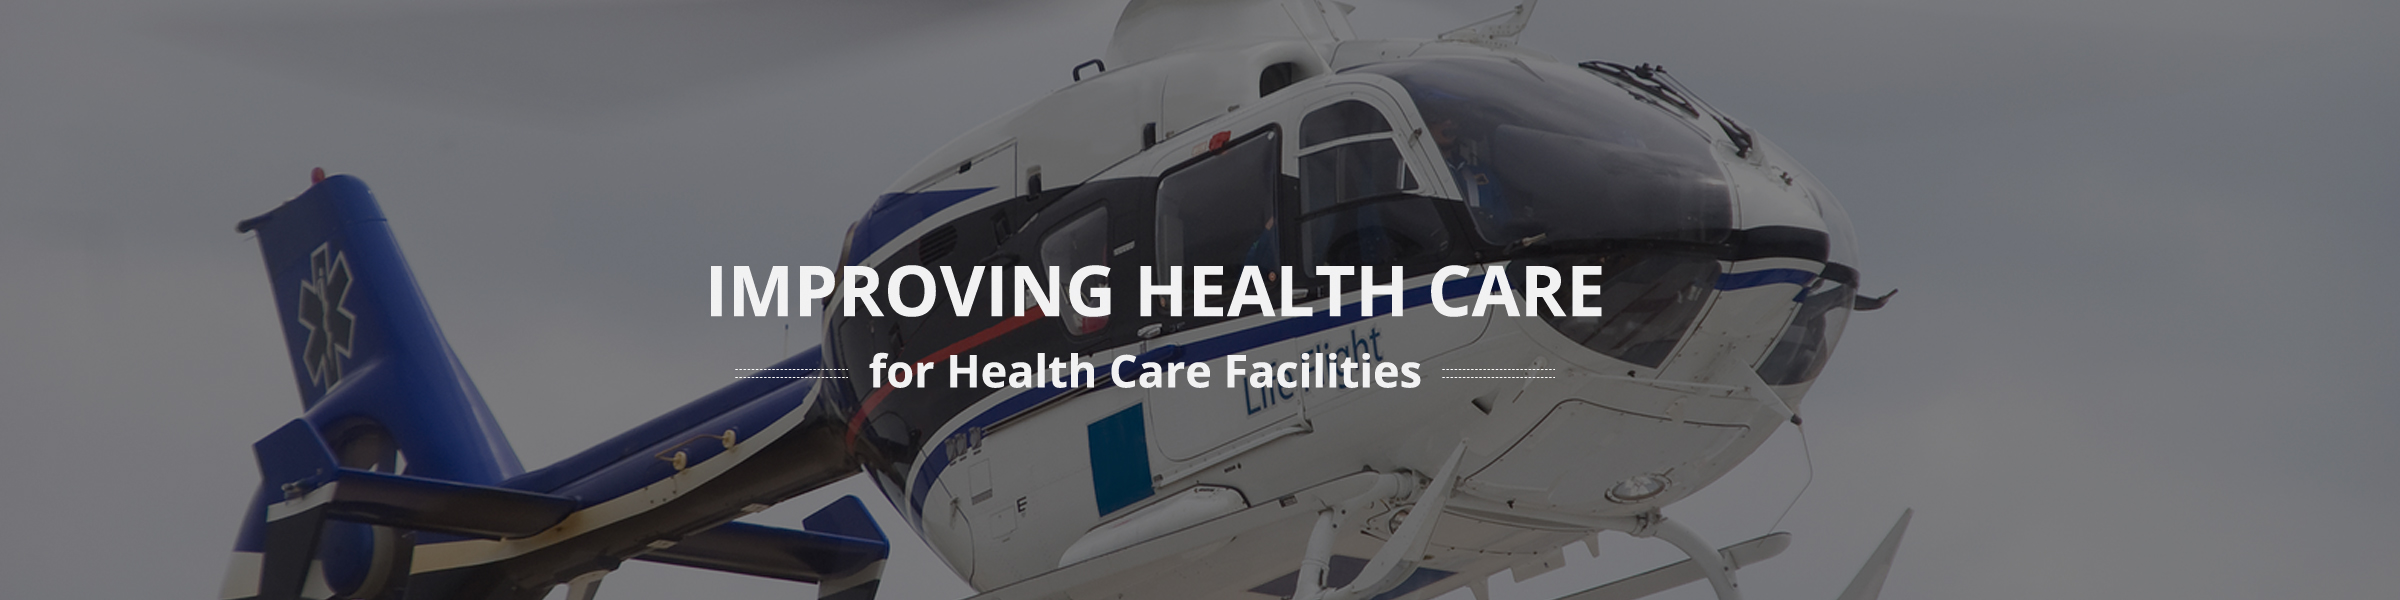 idaho health care facilities